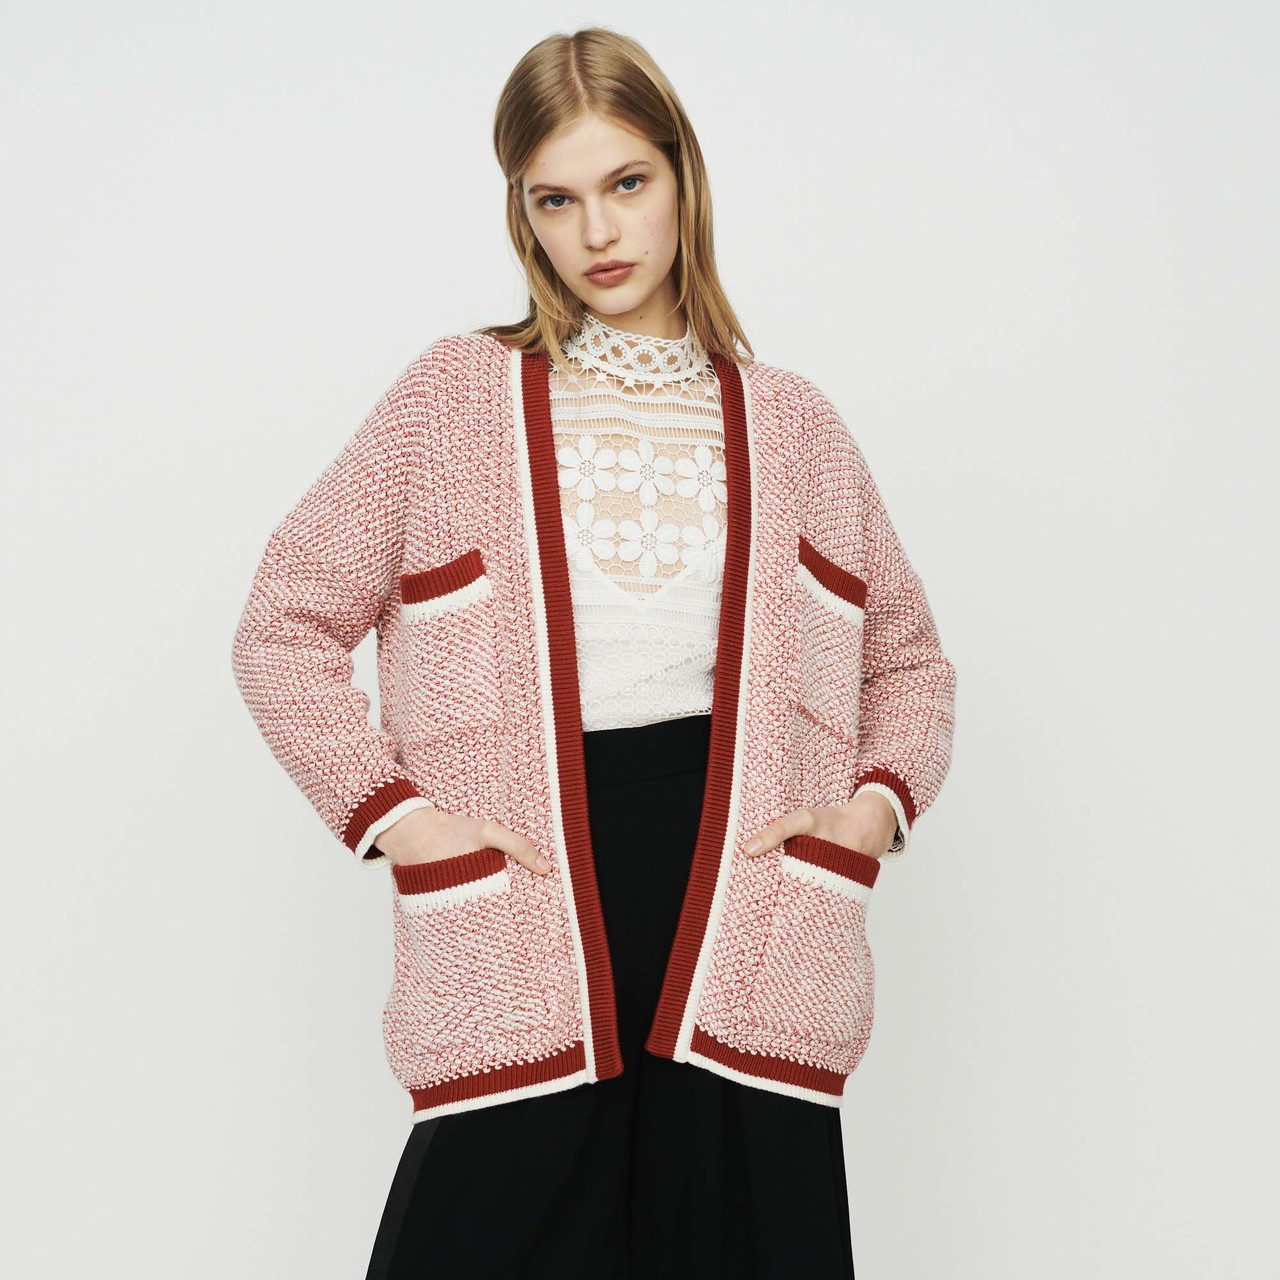 Mid-Length Cardigan In Bicolor Wool - Red